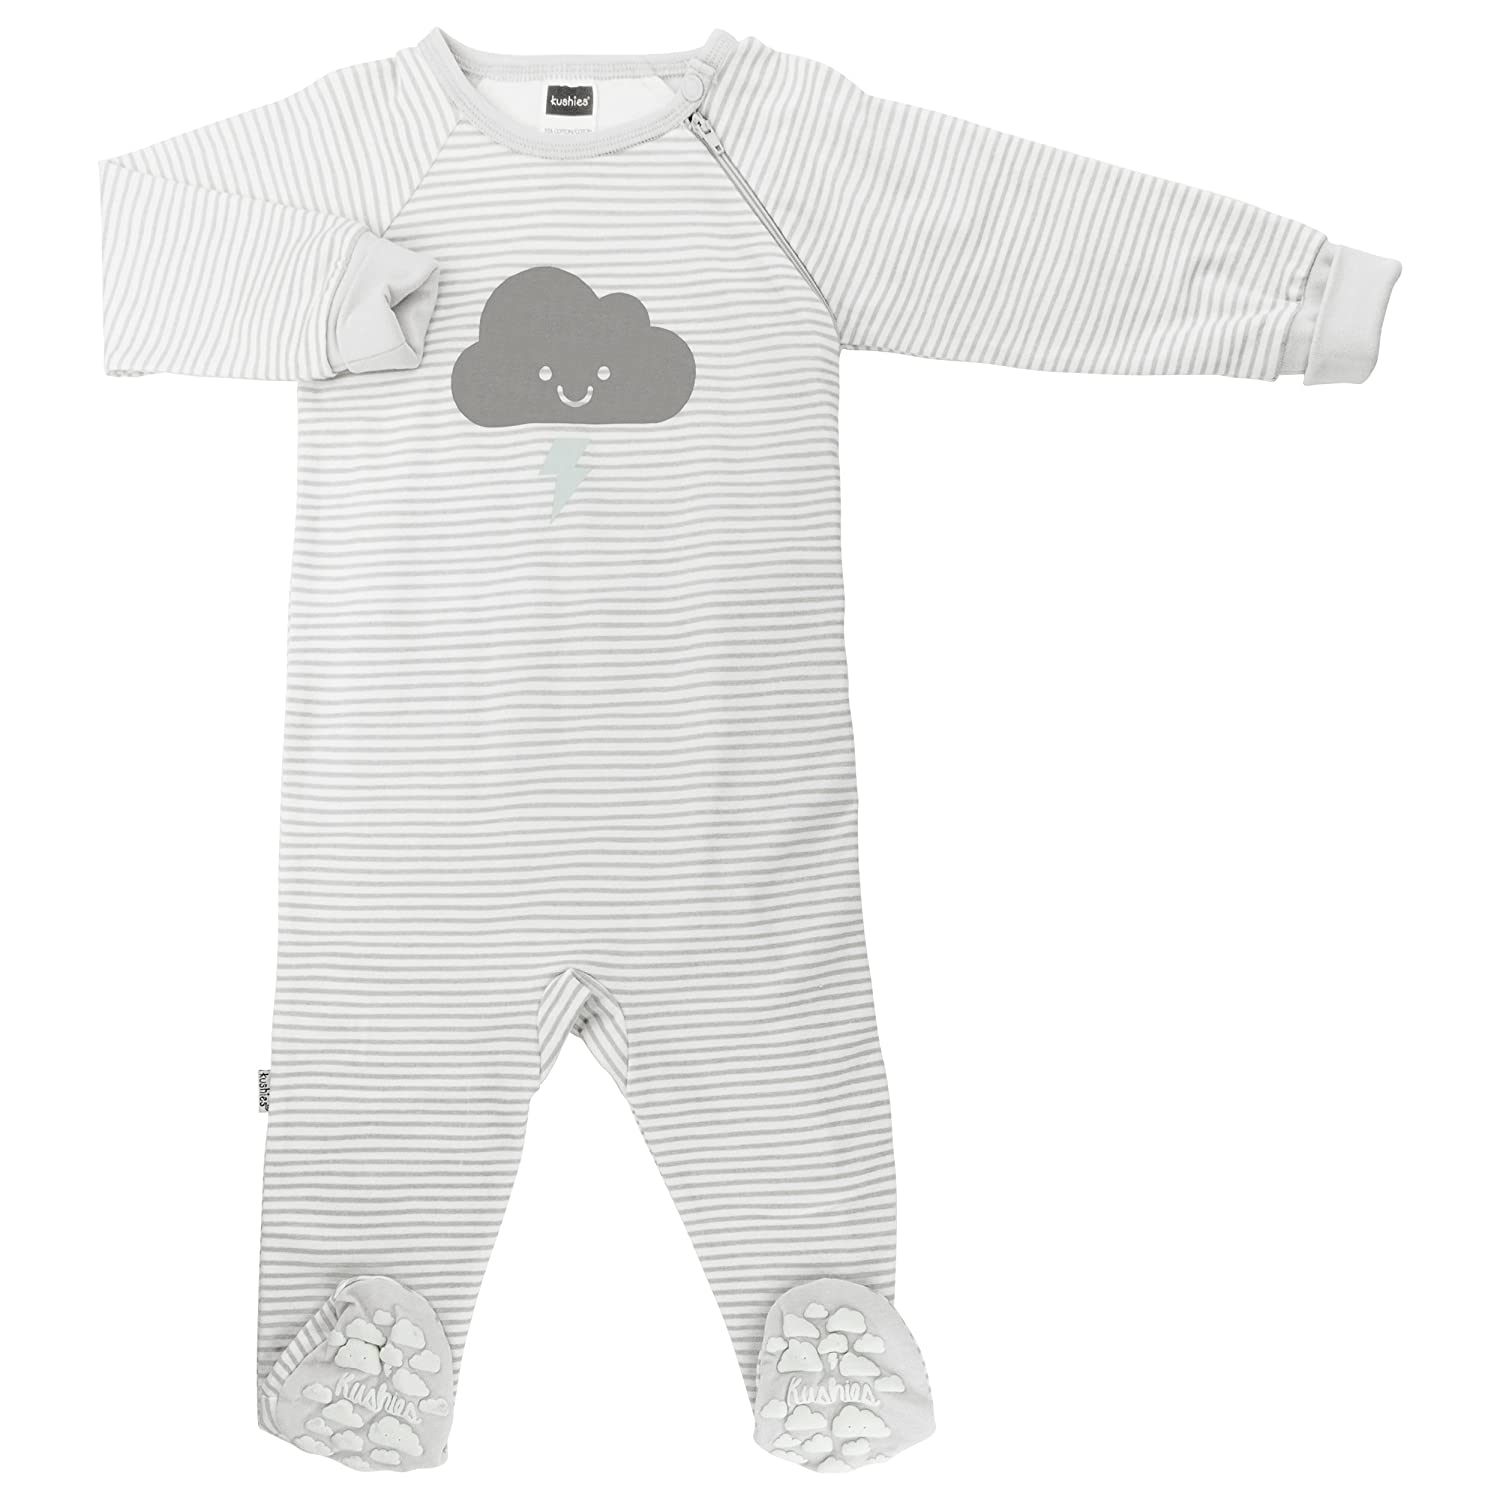 Kushies Baby Infant Sleeper Side Zip, Light Grey Stripe, Preemie L16290048